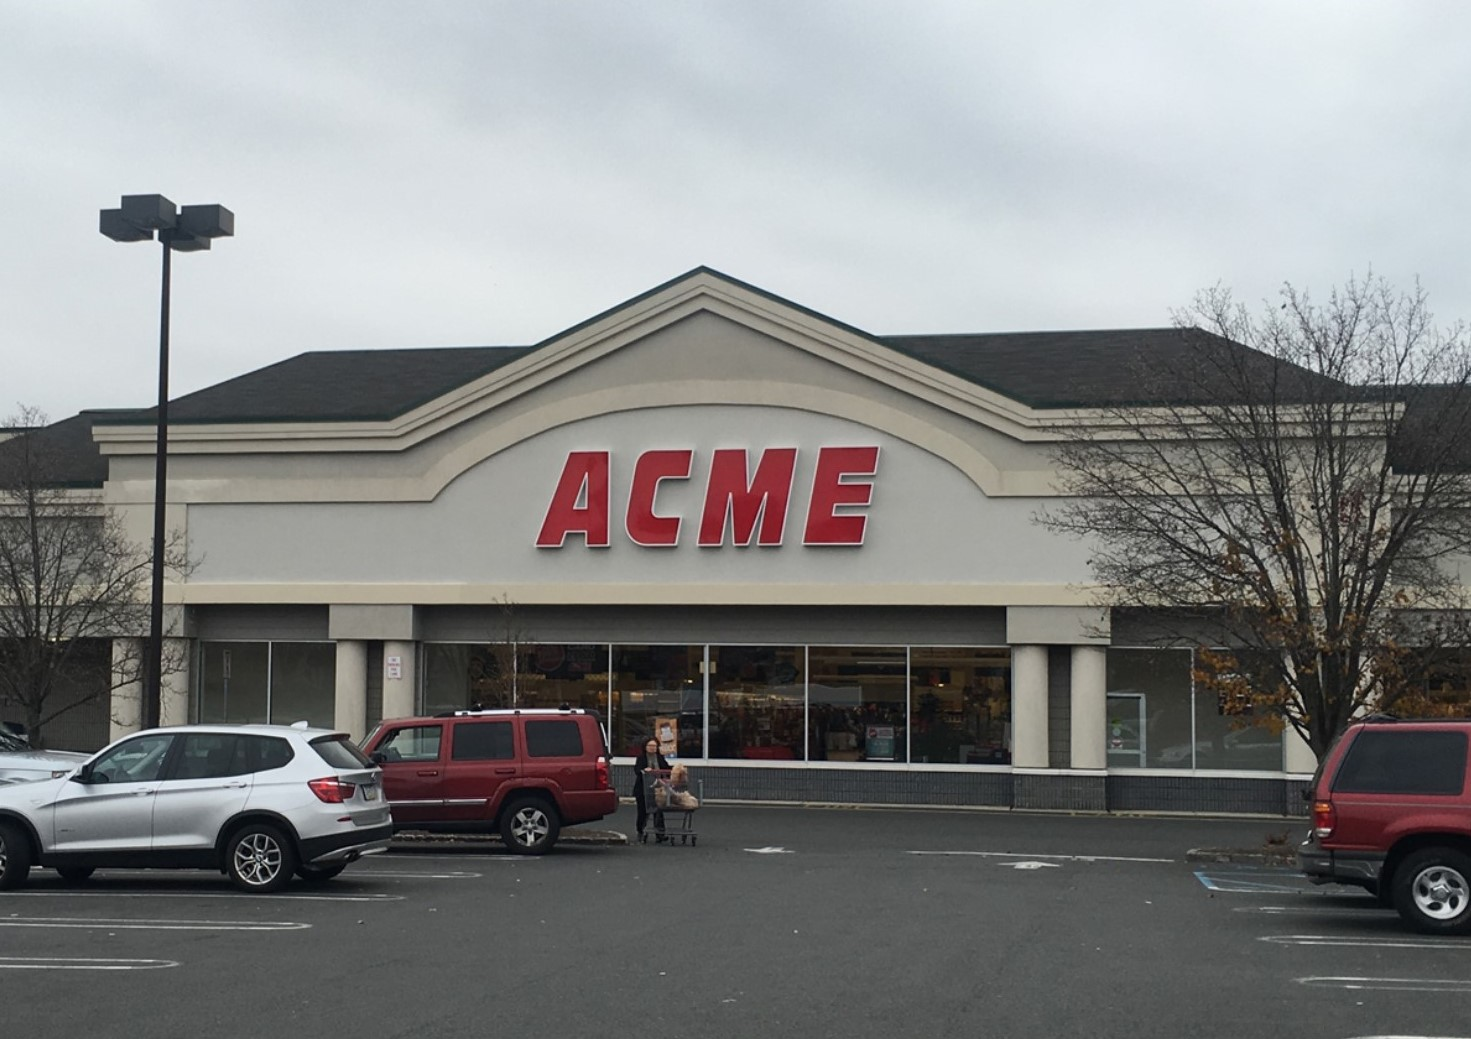 Malvern-Based Acme Markets to Close Three Stores in Region